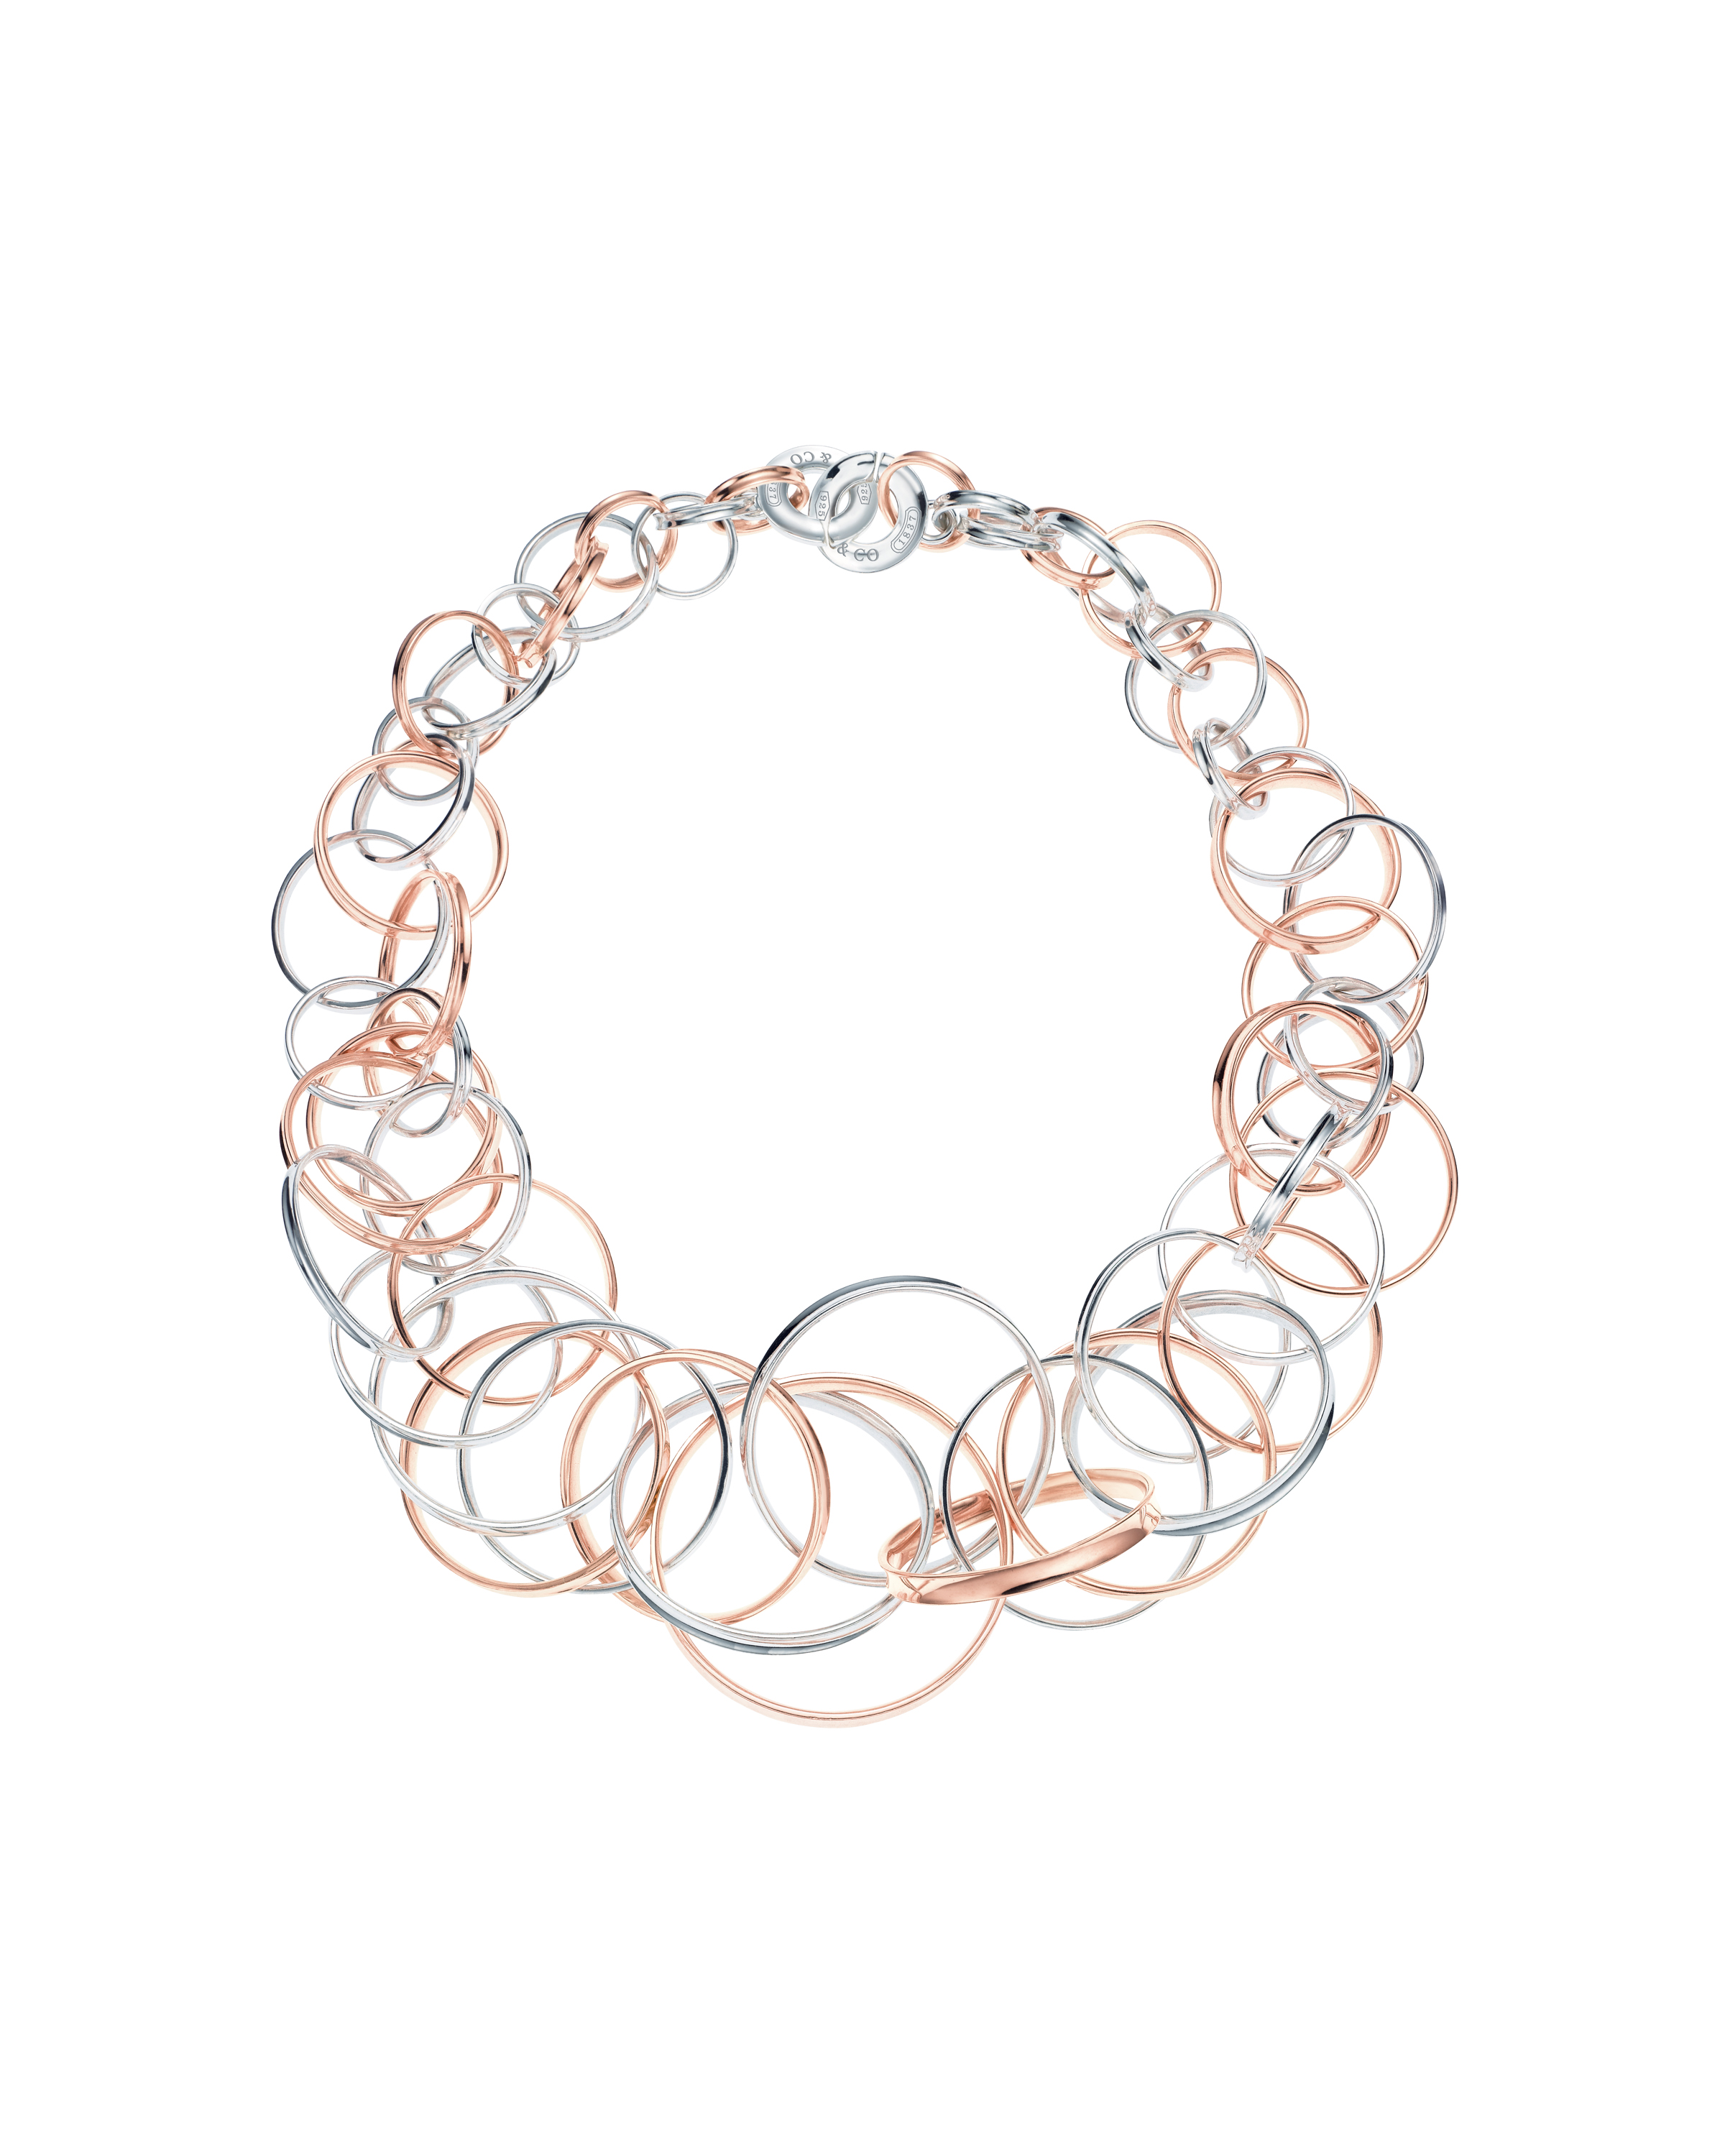 Tiffany 1837 Interlocking Circles Necklace in RUBEDO Metal and Silver